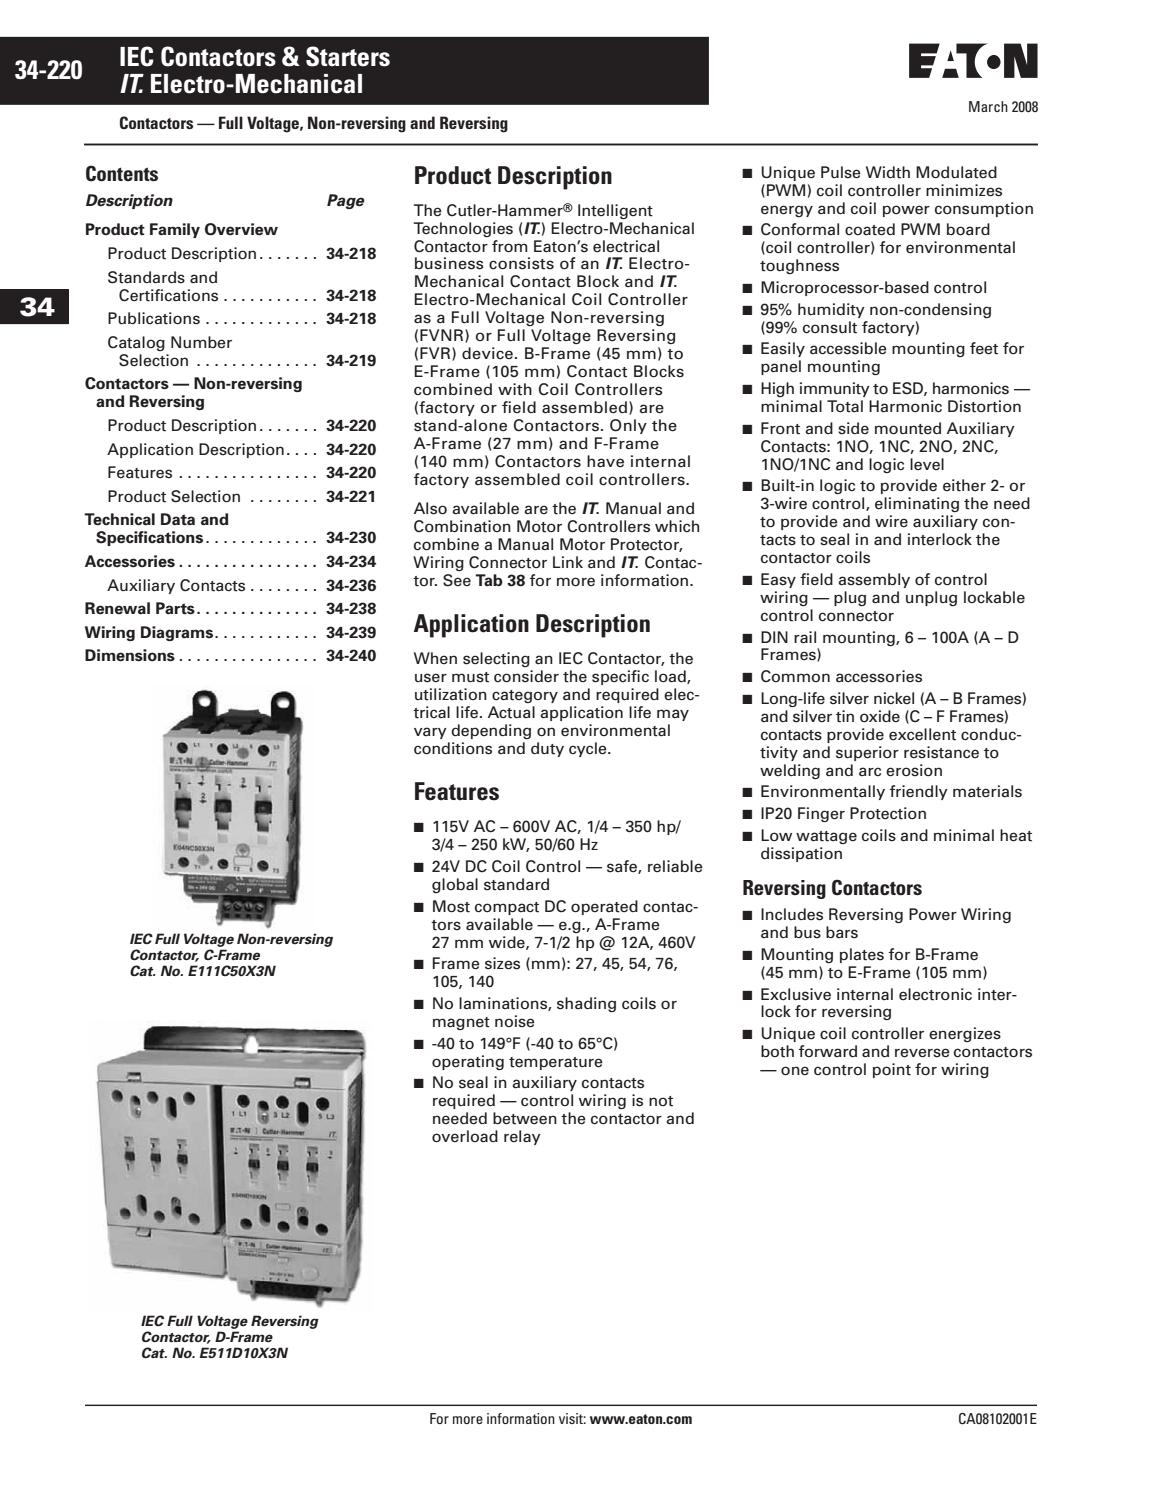 Wiring Diagram Of Manual Call Point besides 136715 Quick Basic Wiring moreover Tr4 Wiring Diagram likewise Bmw Headlight Wiring Diagram likewise Harris Triumph Wiring Diagram. on triumph legend wiring diagram